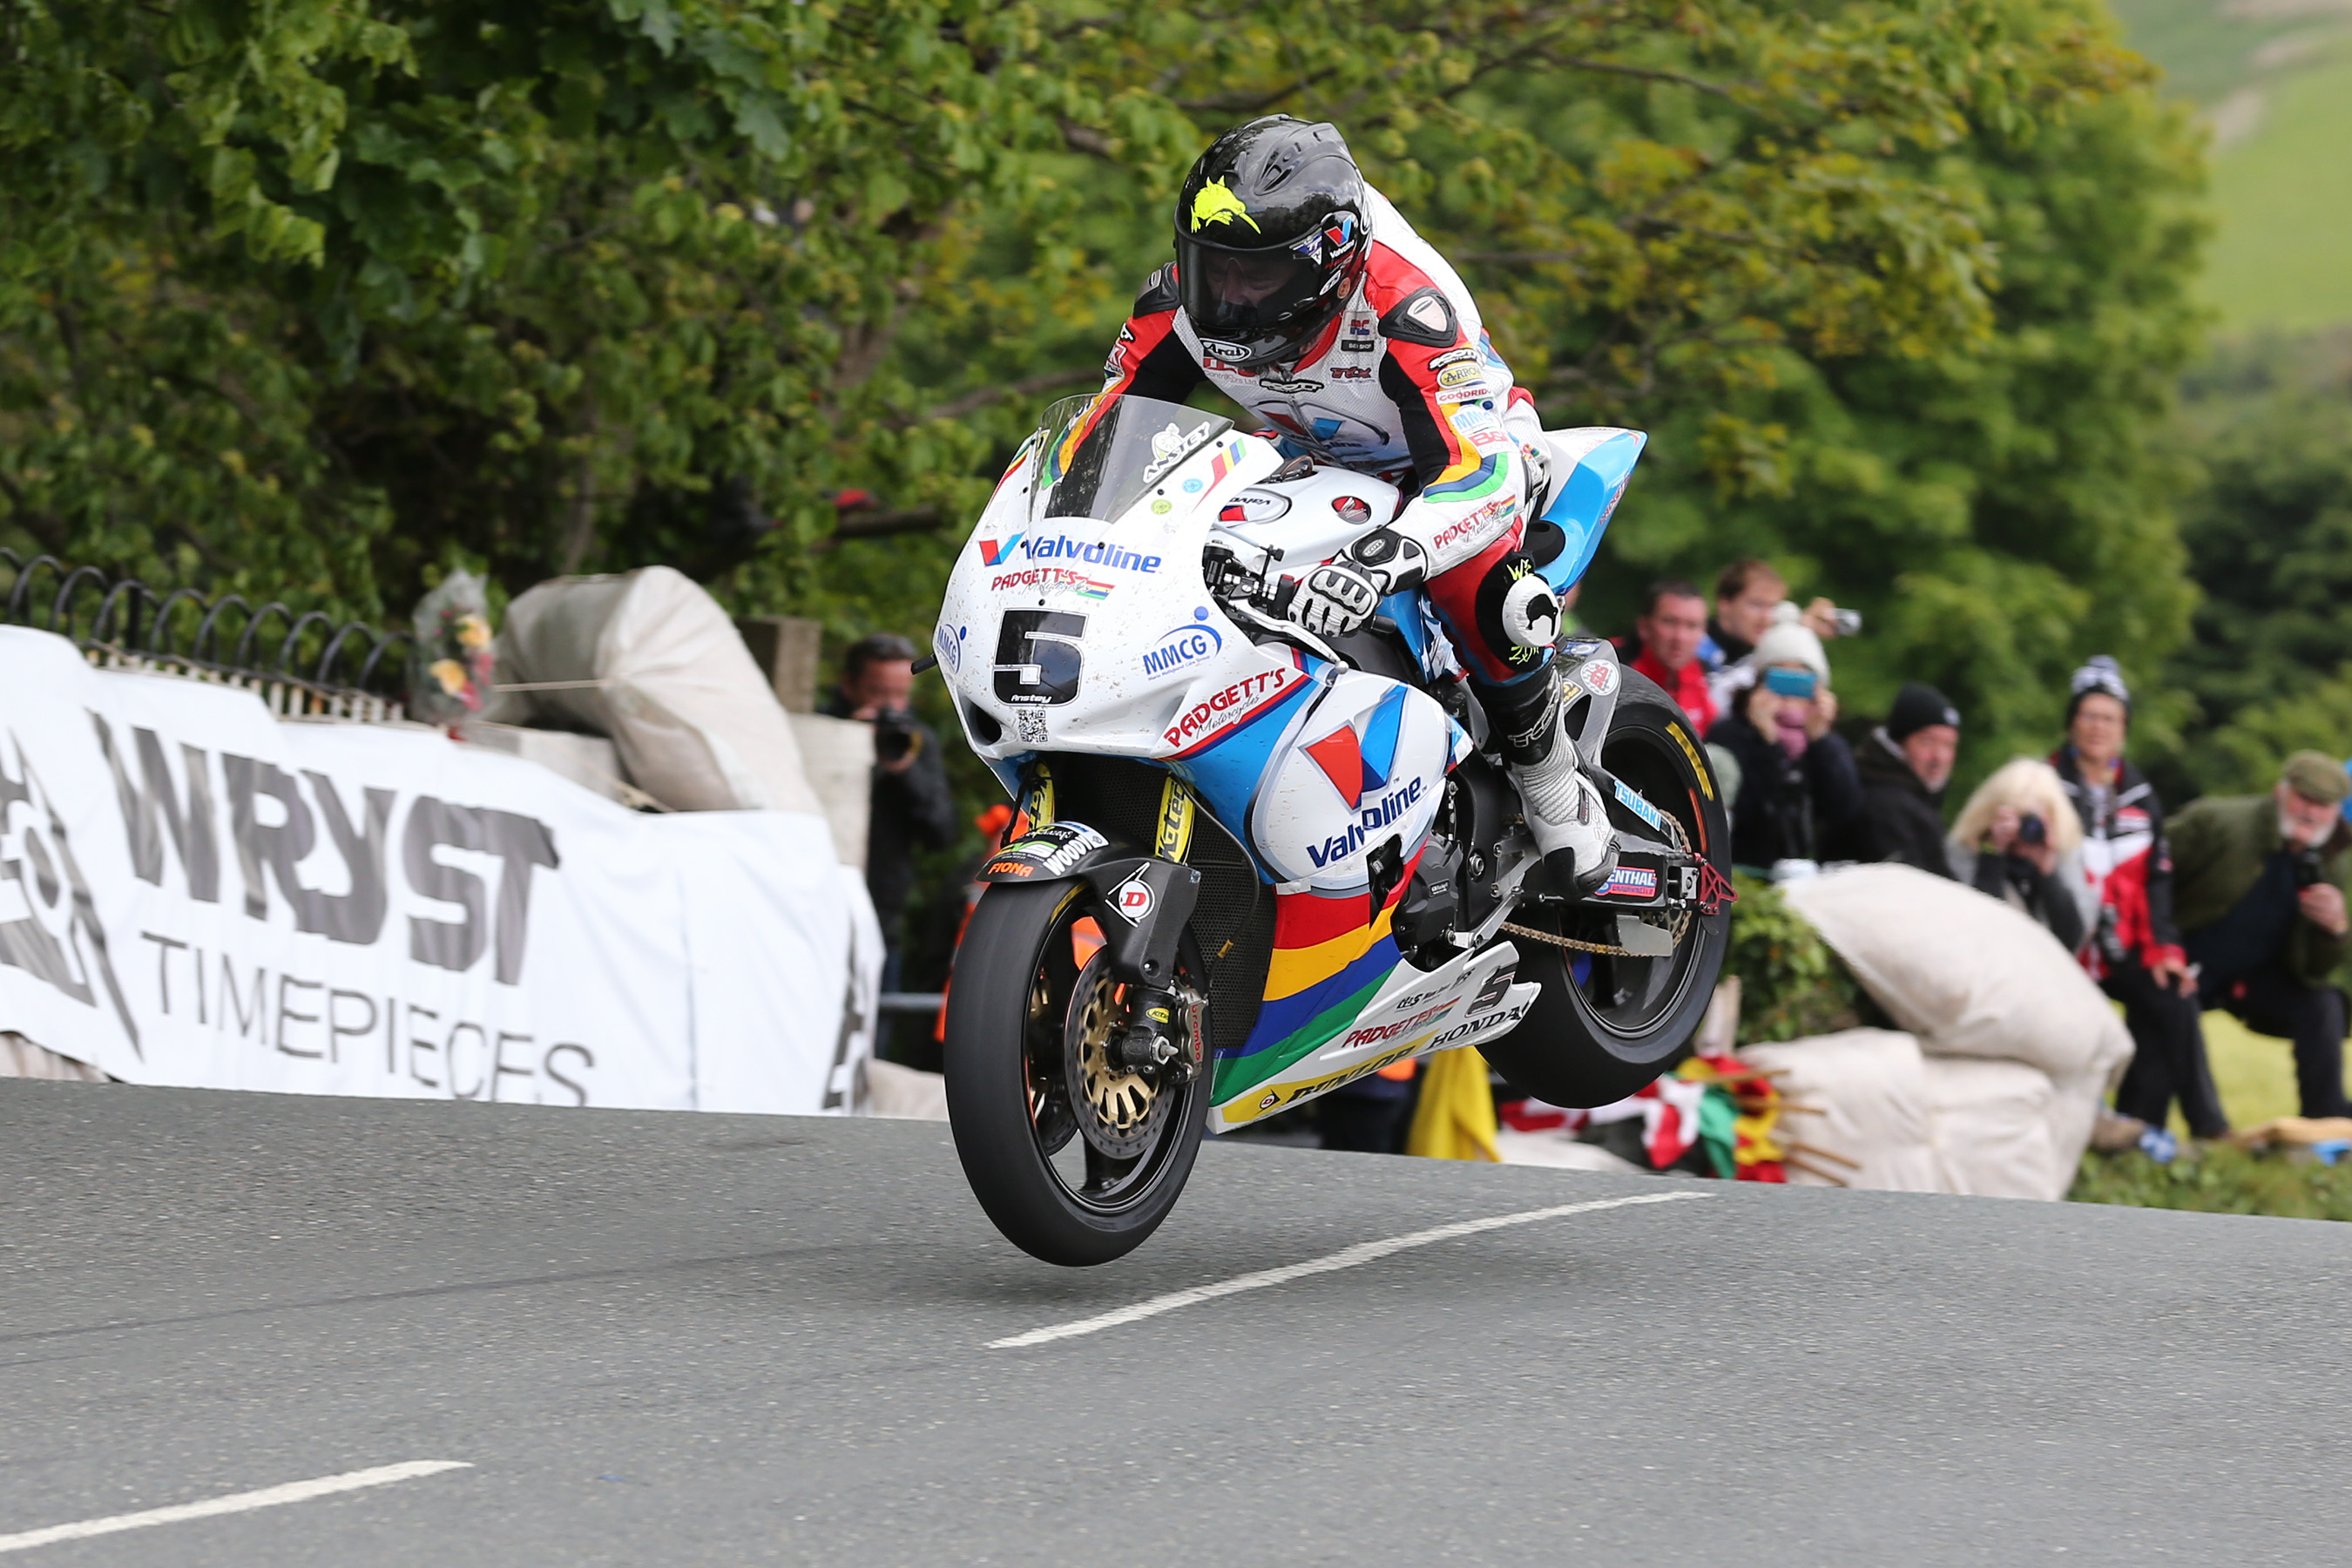 IoM TT: Anstey wins first superbike race on the Isle of Man